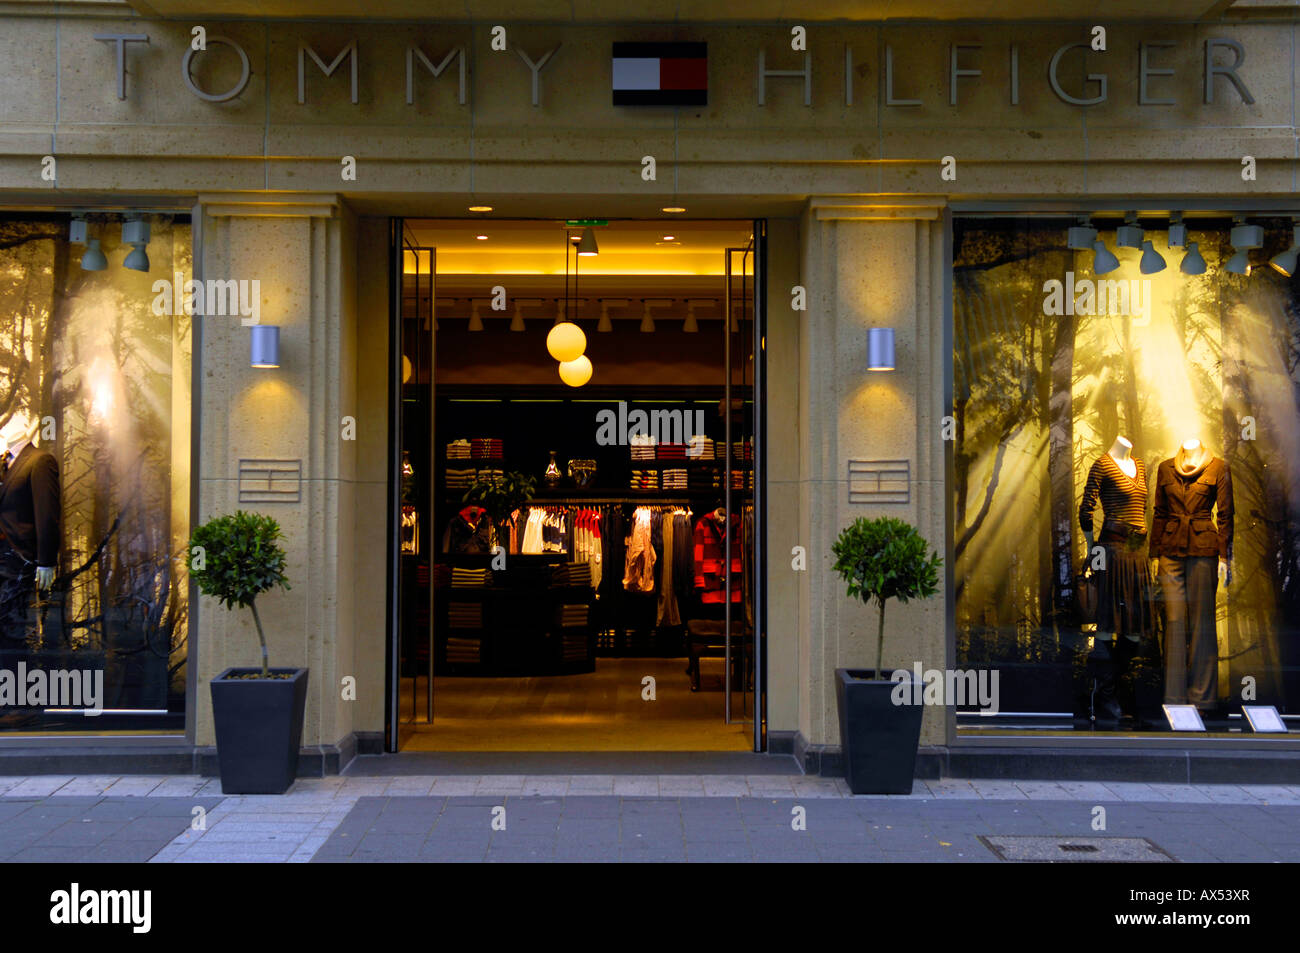 tommy hilfiger designer store duesseldorf dusseldorf germany fashion retail  clothes consumerism american shop highstreet germany f90ab870155